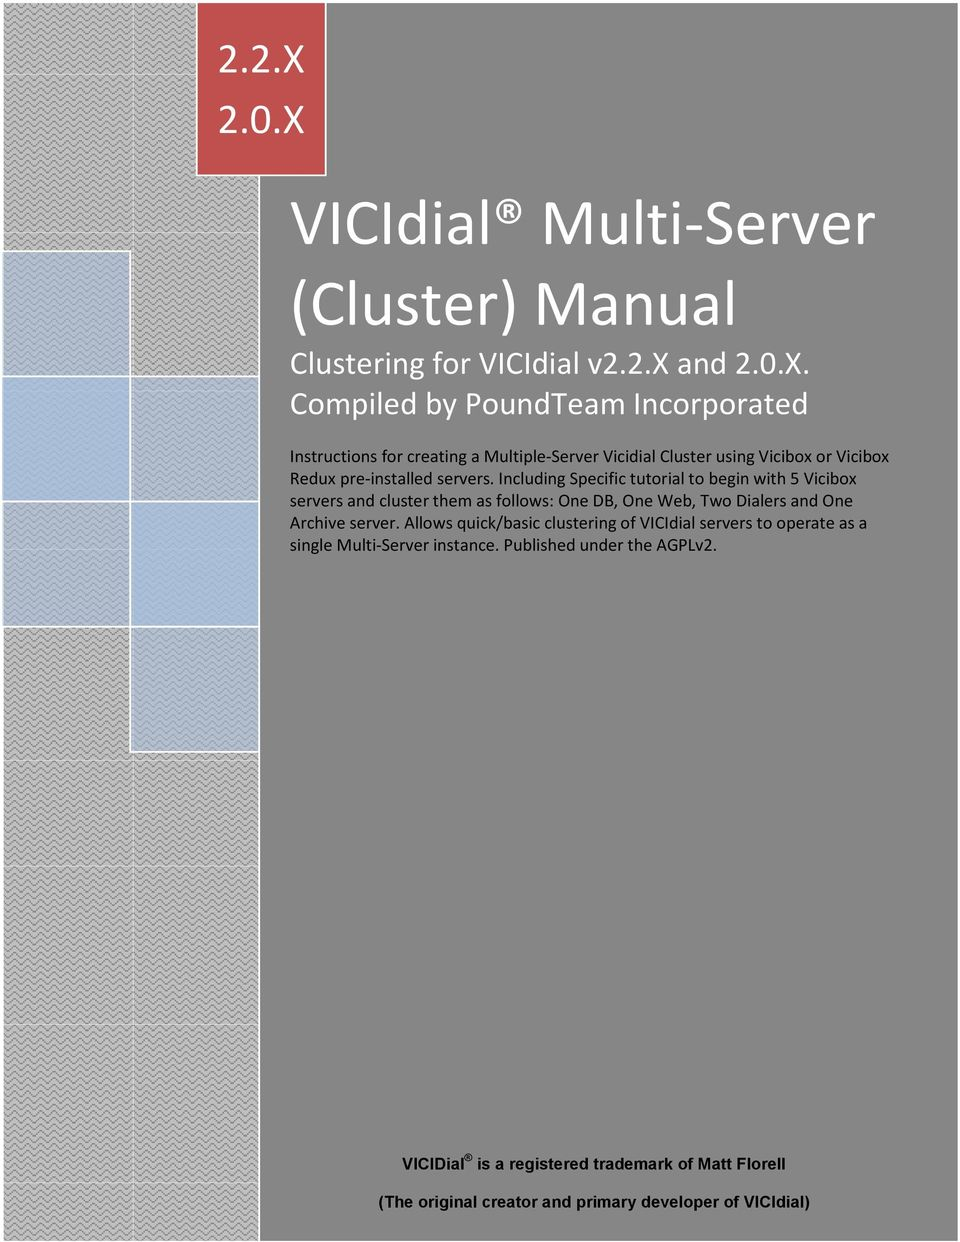 Allows quick/basic clustering of VICIdial servers to operate as a single Multi-Server instance. Published under the AGPLv2.